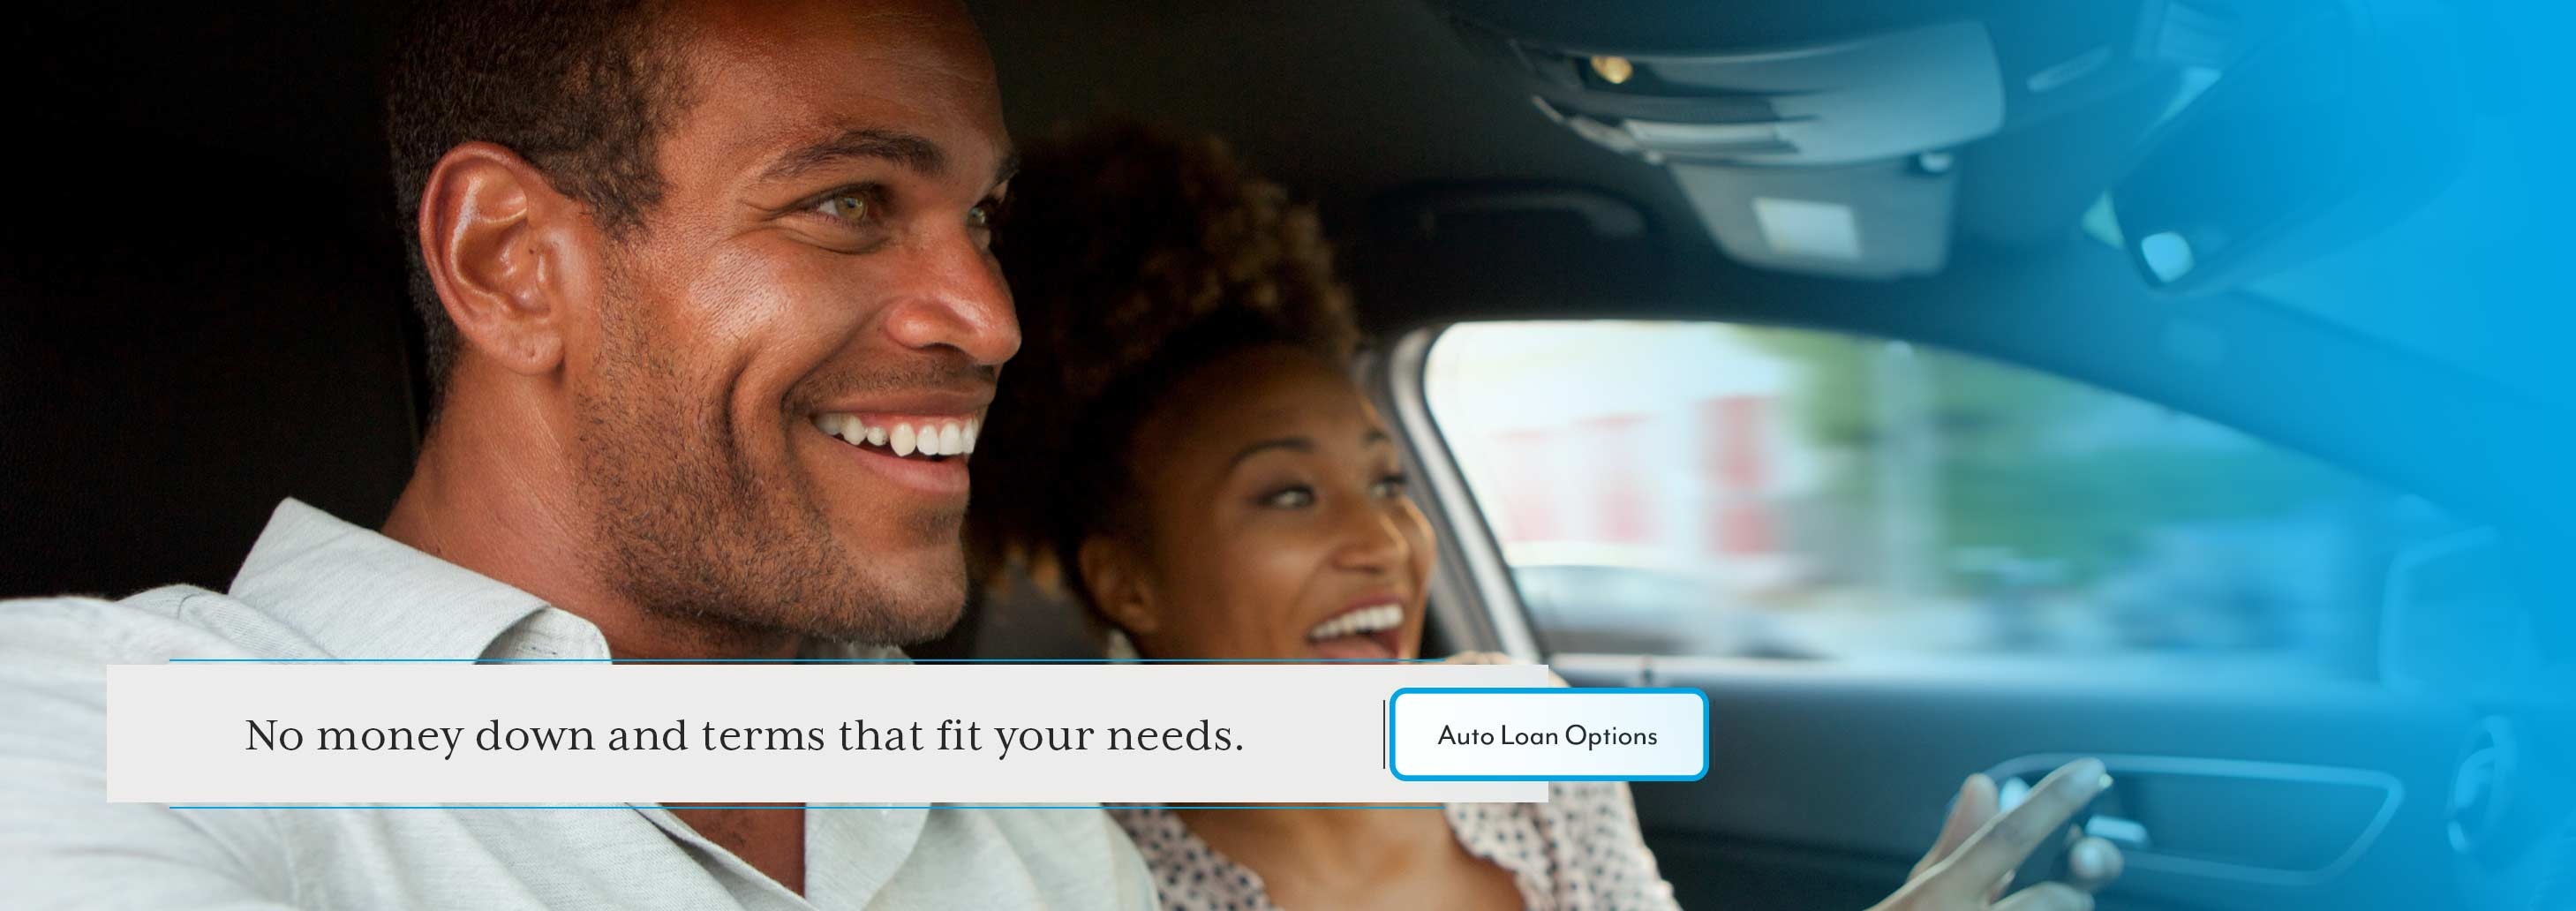 No money down and terms that  fit your needs. Auto Loan Options